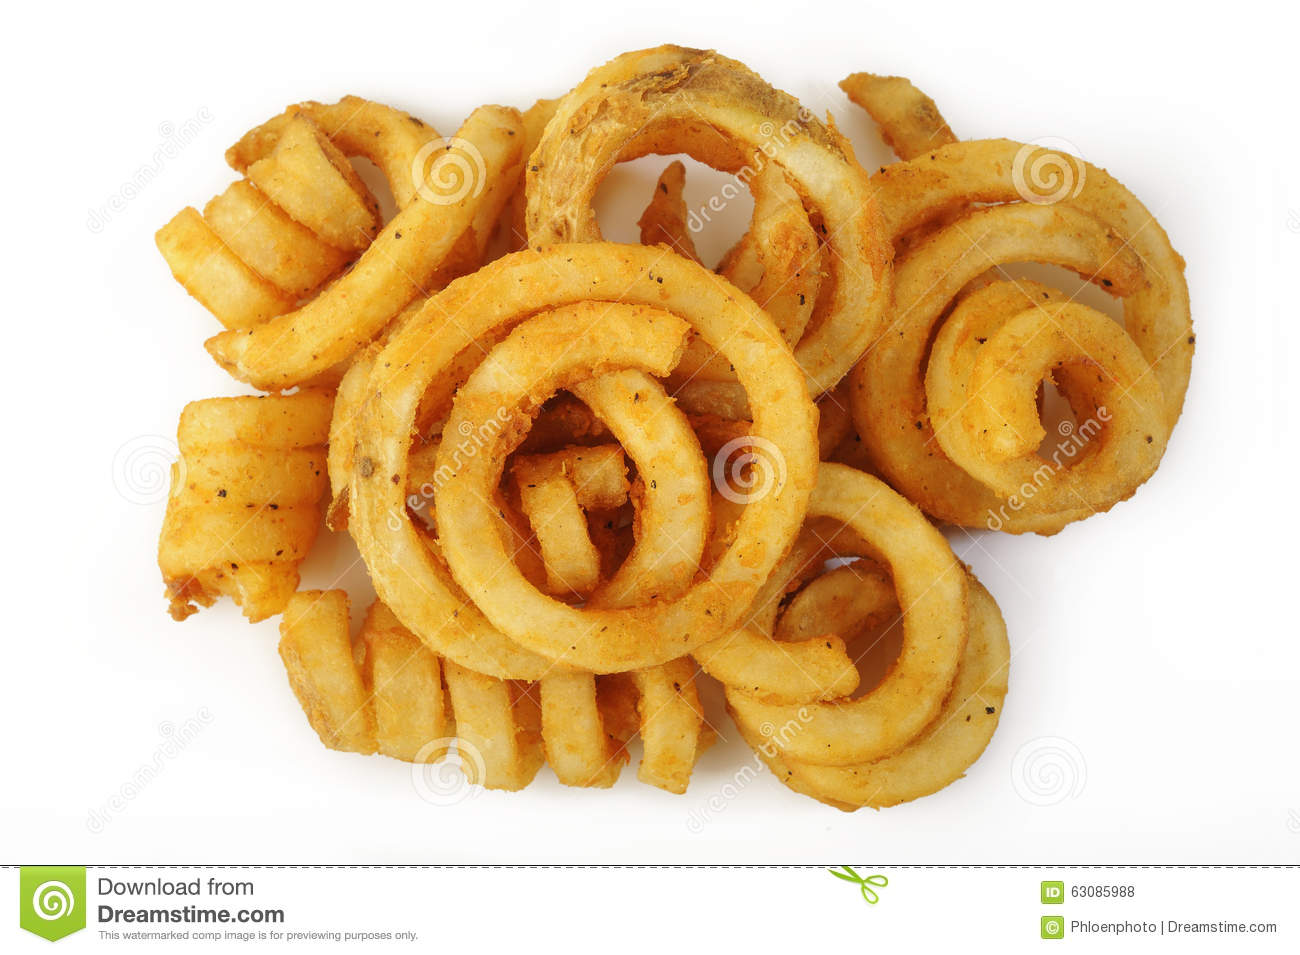 how to cook curly fries